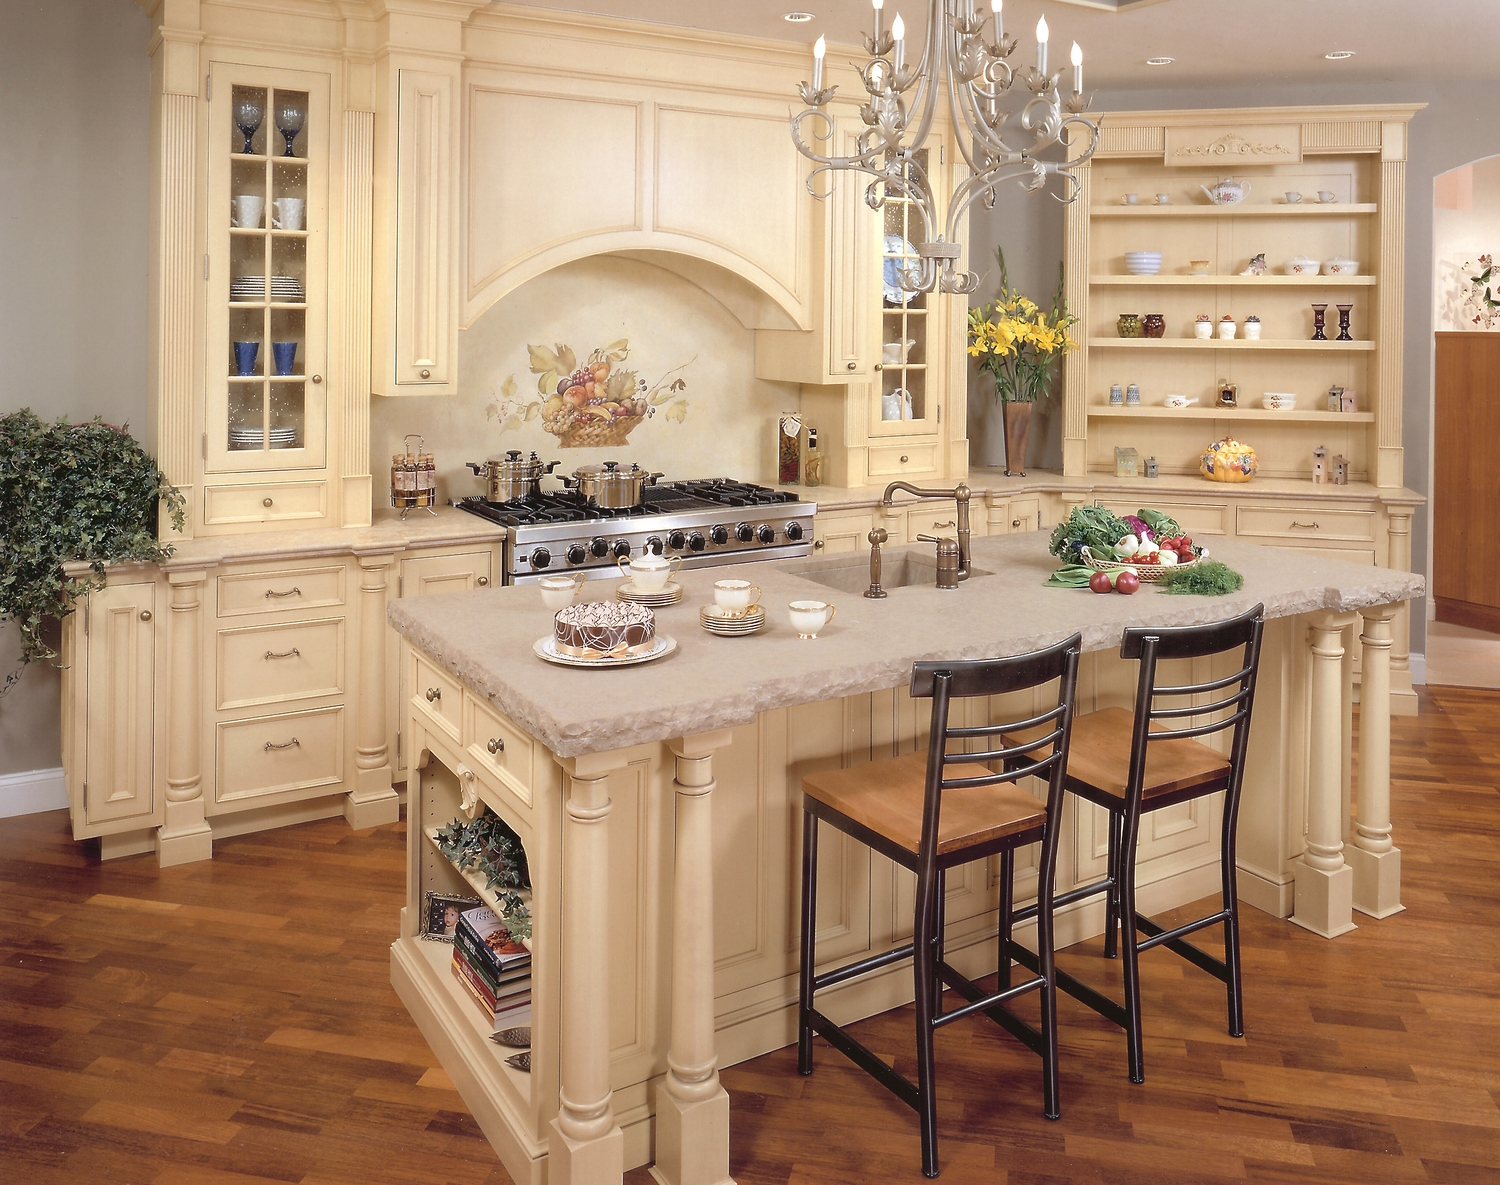 New York Kitchen Remodeling Updated Kitchen New York House Decor